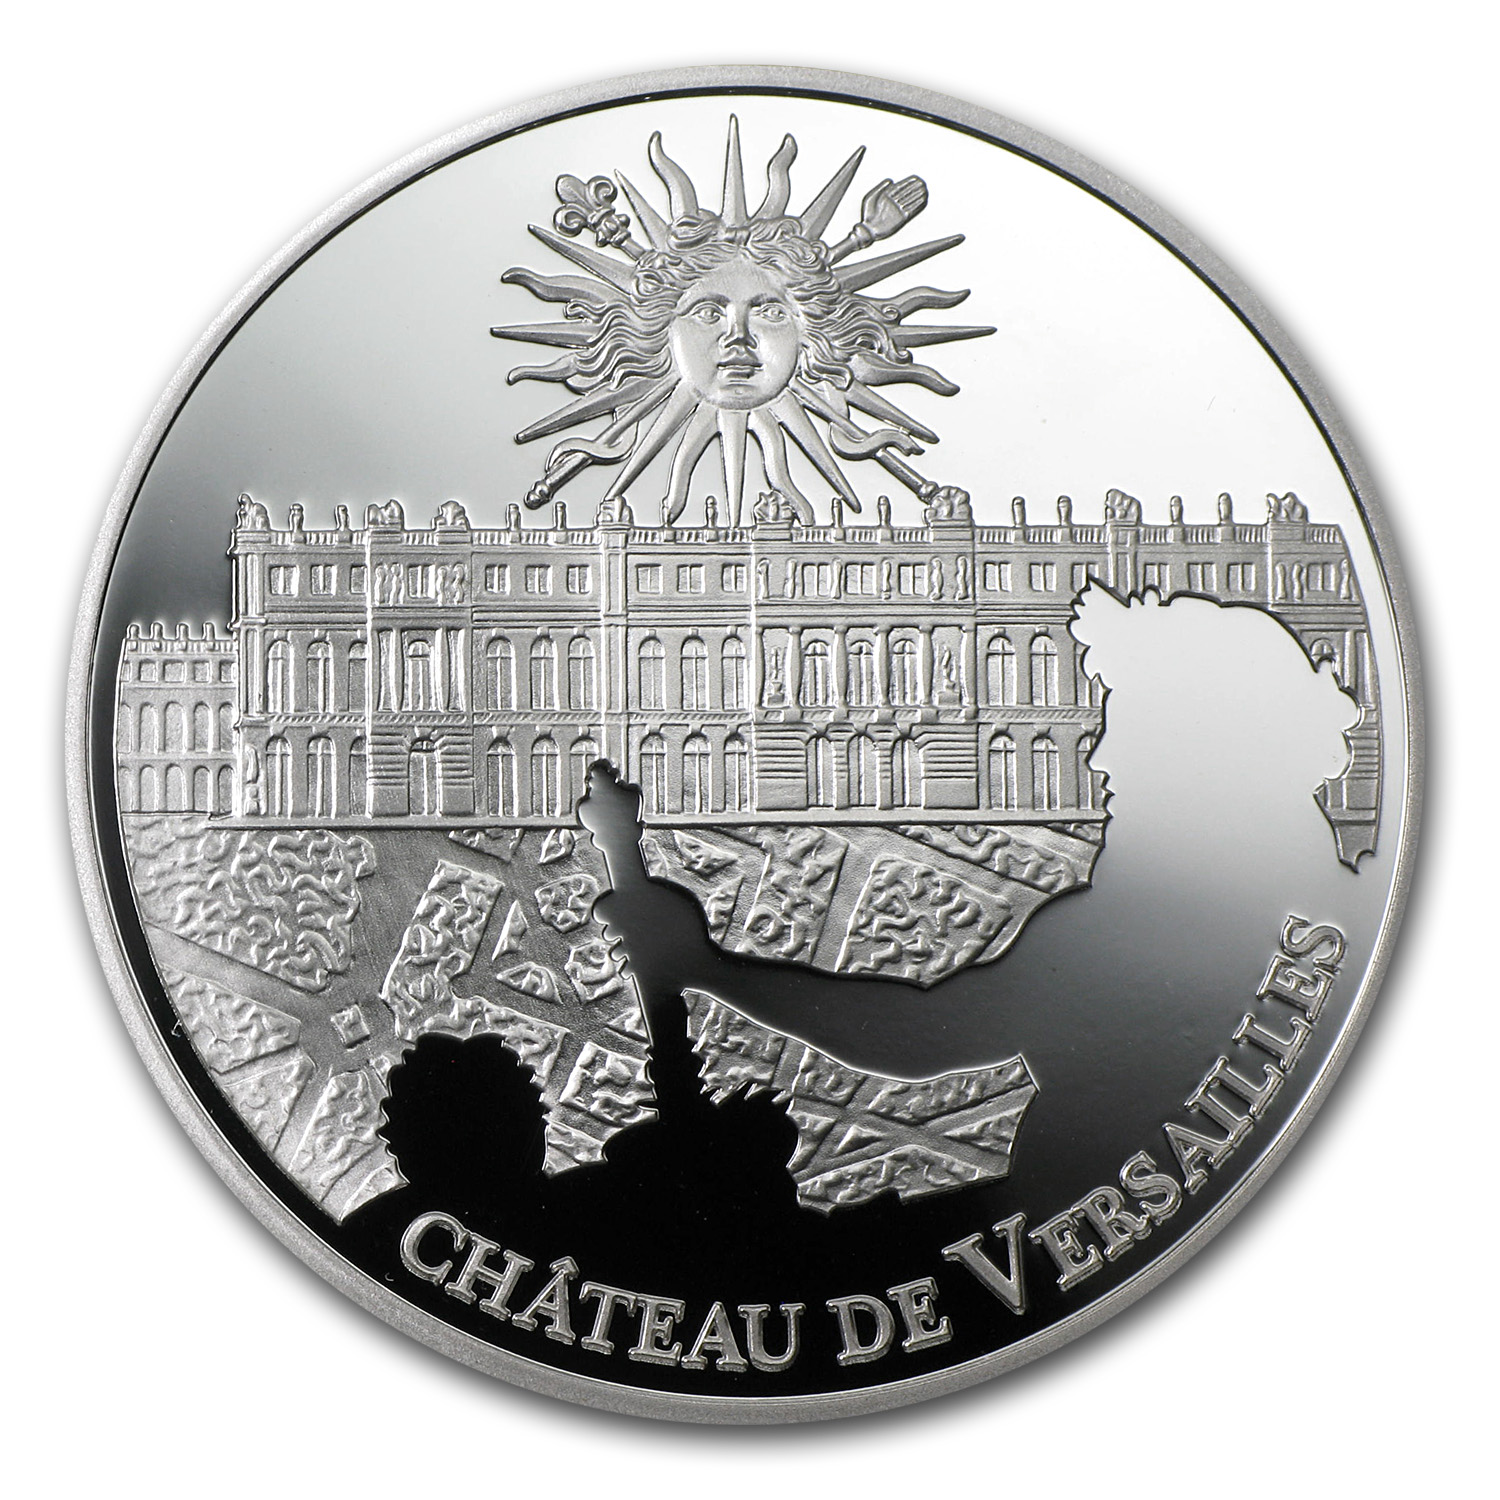 2011 France Silver €10 UNESCO Palace of Versailles Proof